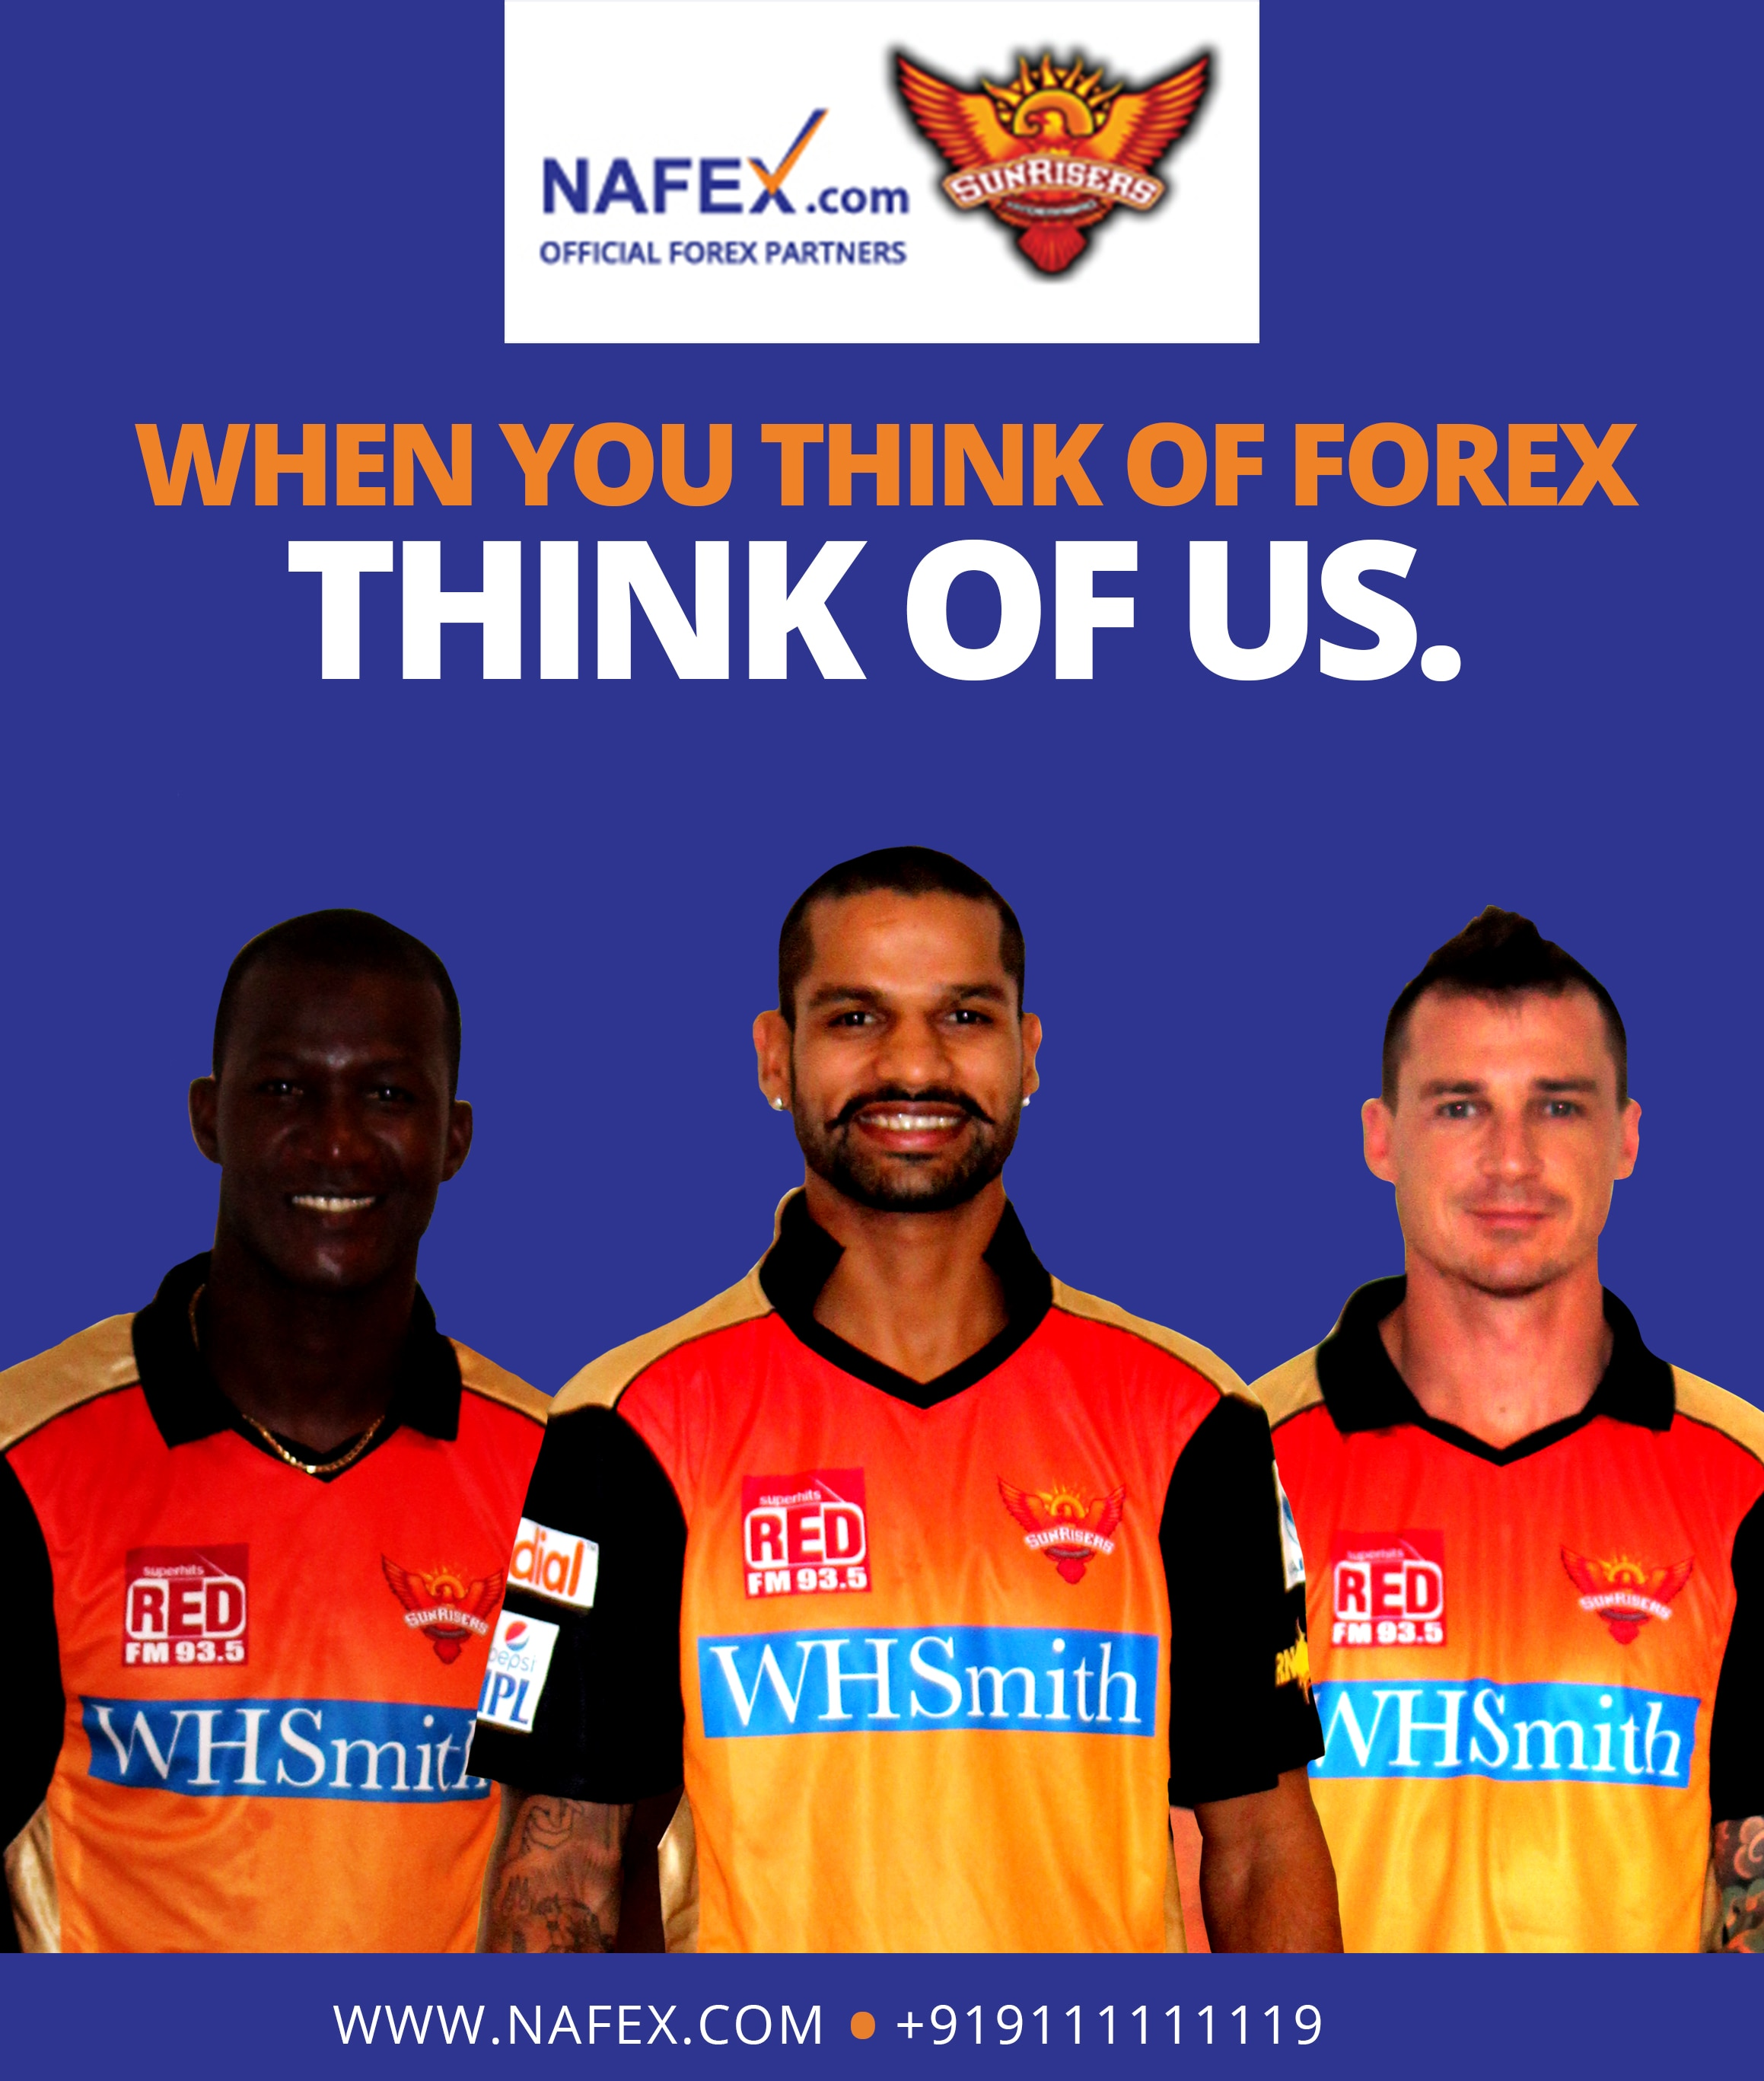 Nafex - Bank Street, Karol Bagh Foreign Currency Exchange Dealers Agents Bank Street, Karol Bagh, Online Travellers Cheque & Forex Prepaid Card